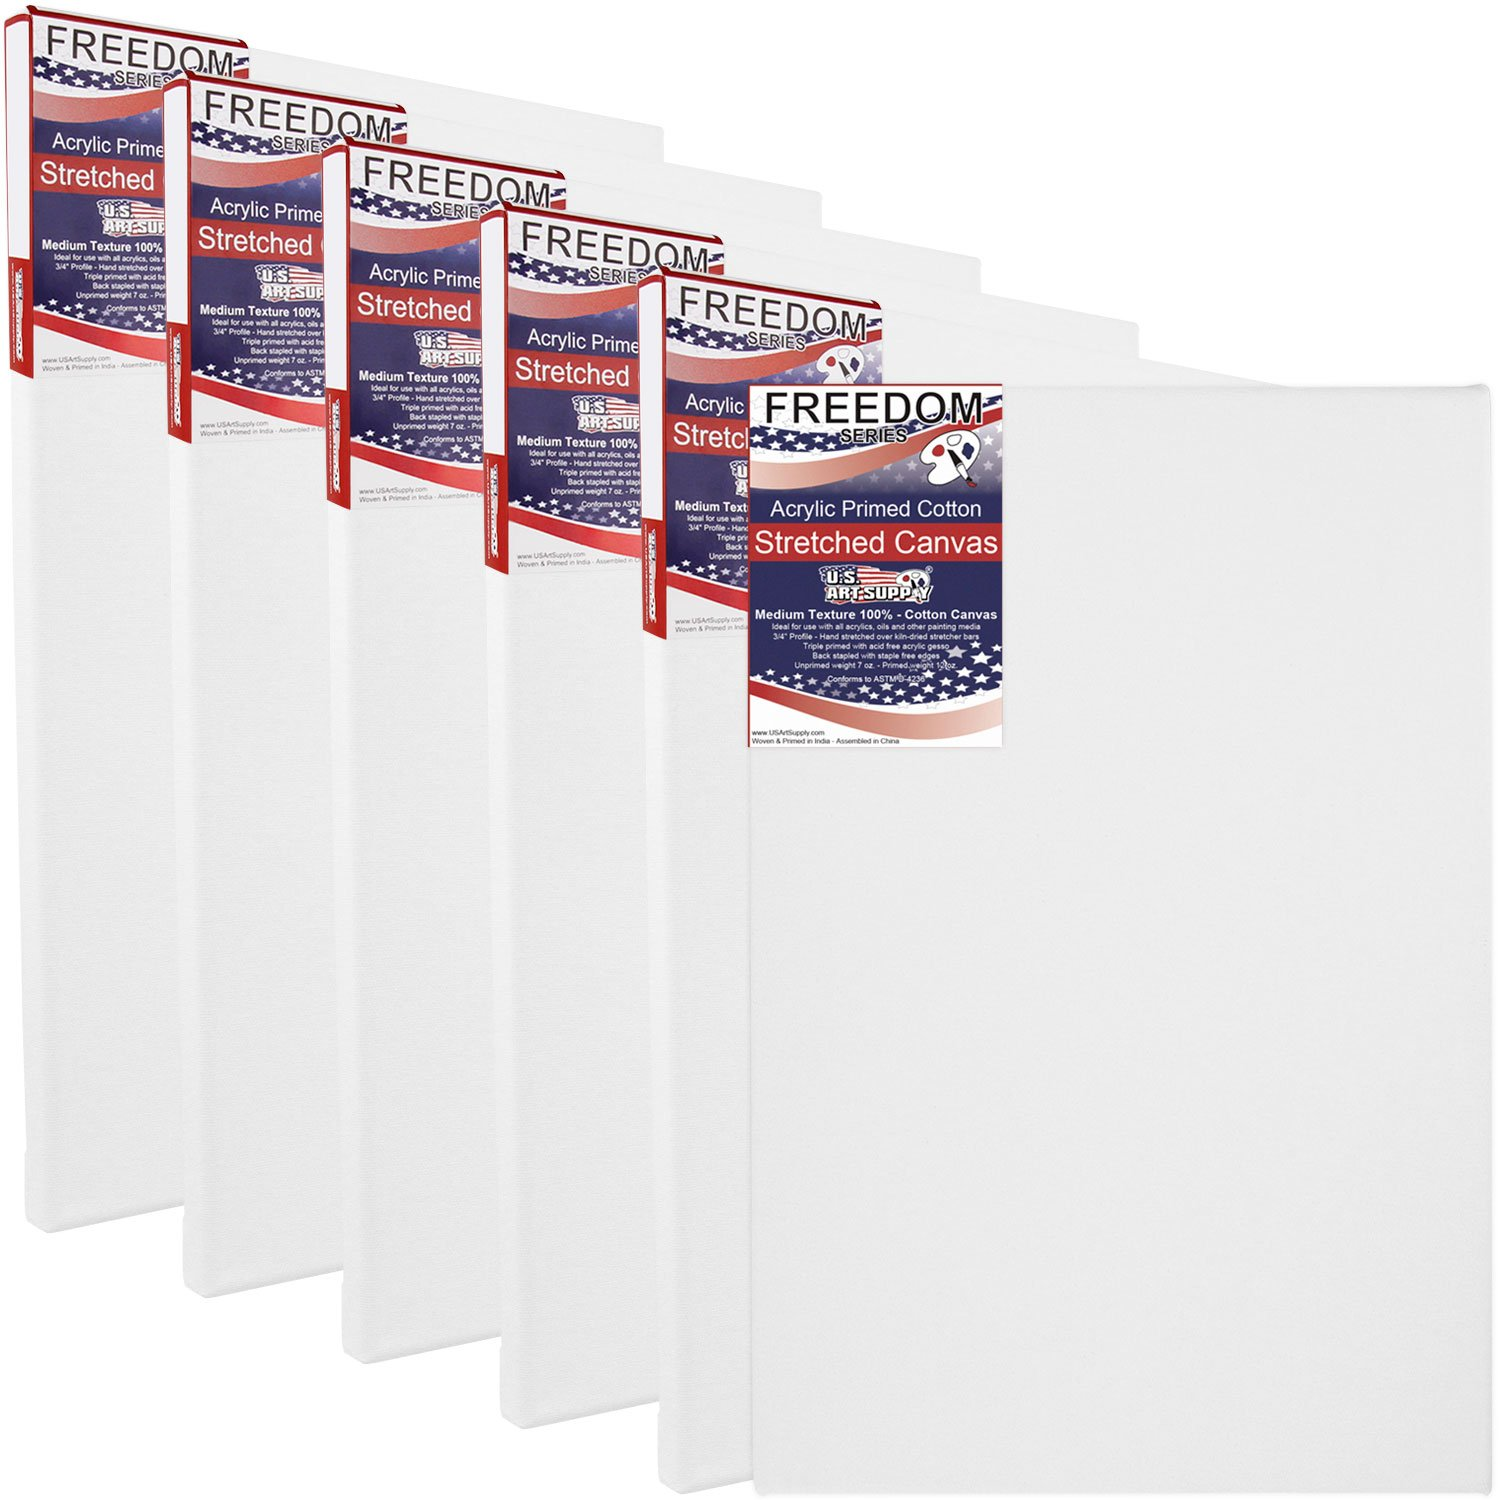 US Art Supply 36 X 48 inch Professional Quality Acid Free Stretched Canvas 6-Pack - 3/4 Profile 12 Ounce Primed Gesso - (1 Full Case of 6 Single Canvases)